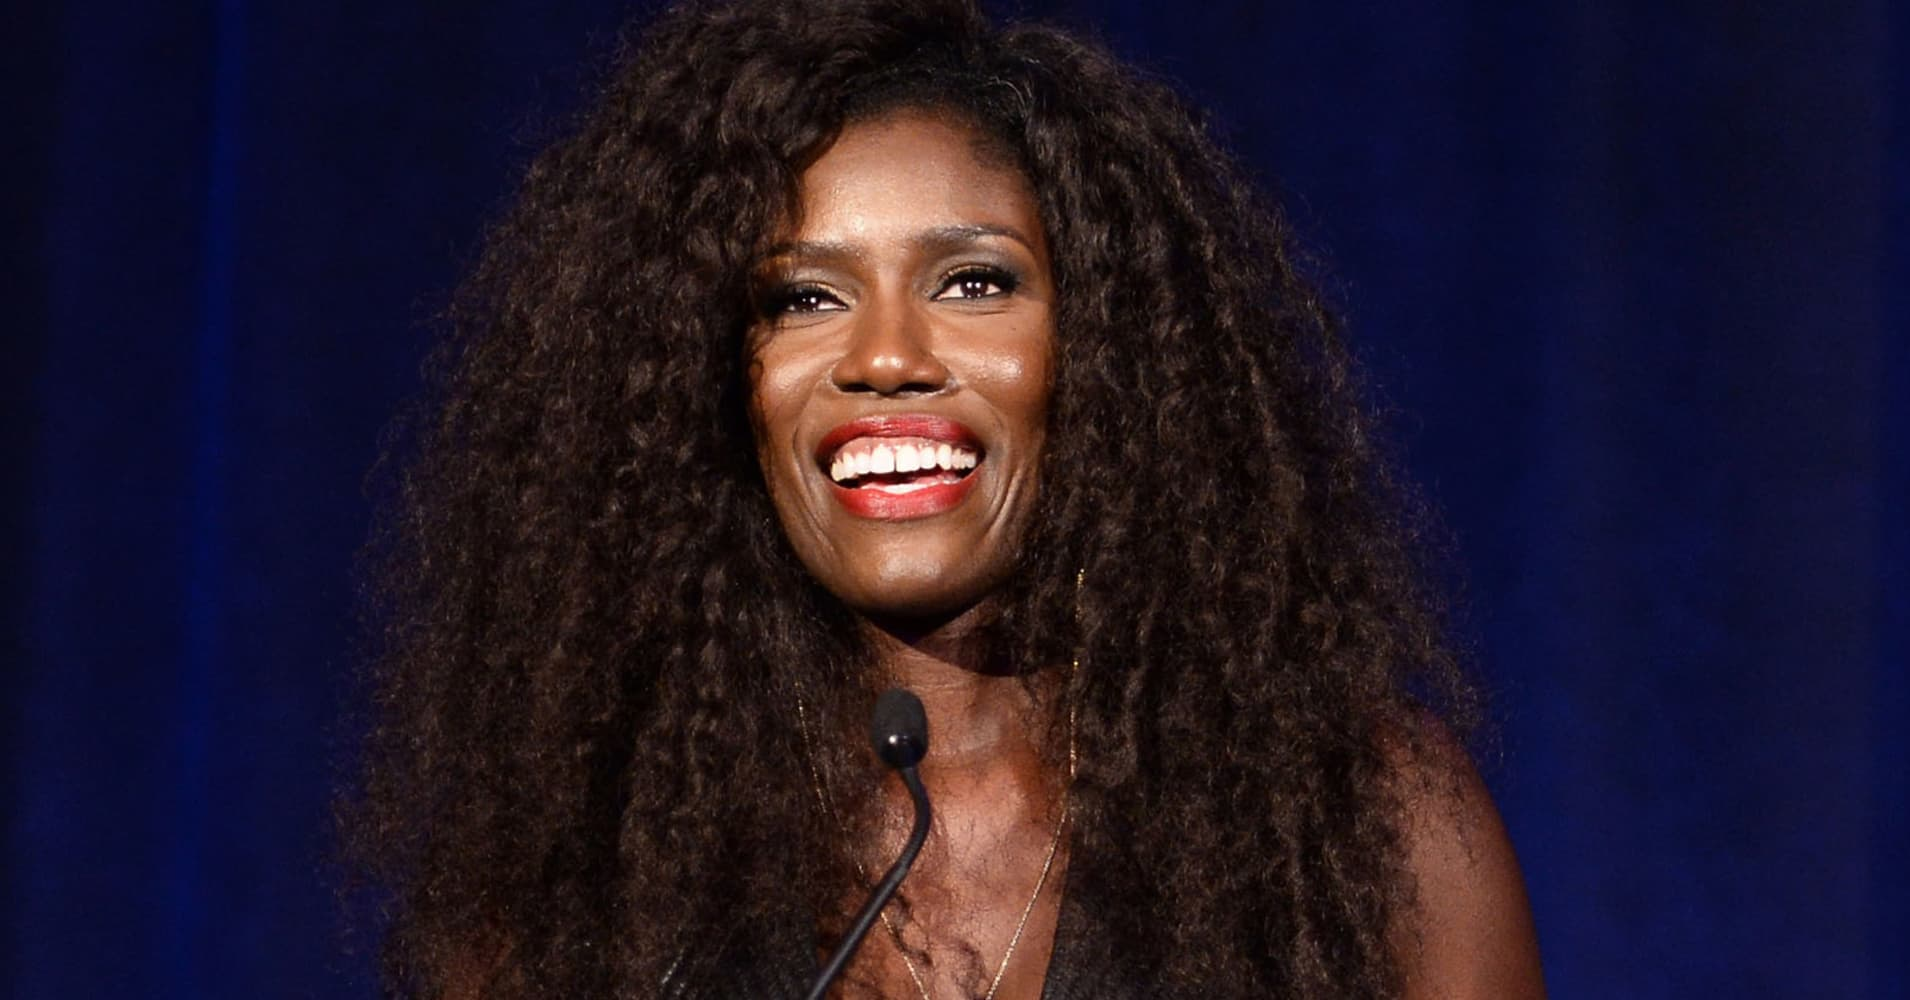 Bozoma Saint John is the Chief Brand Officer at Uber.